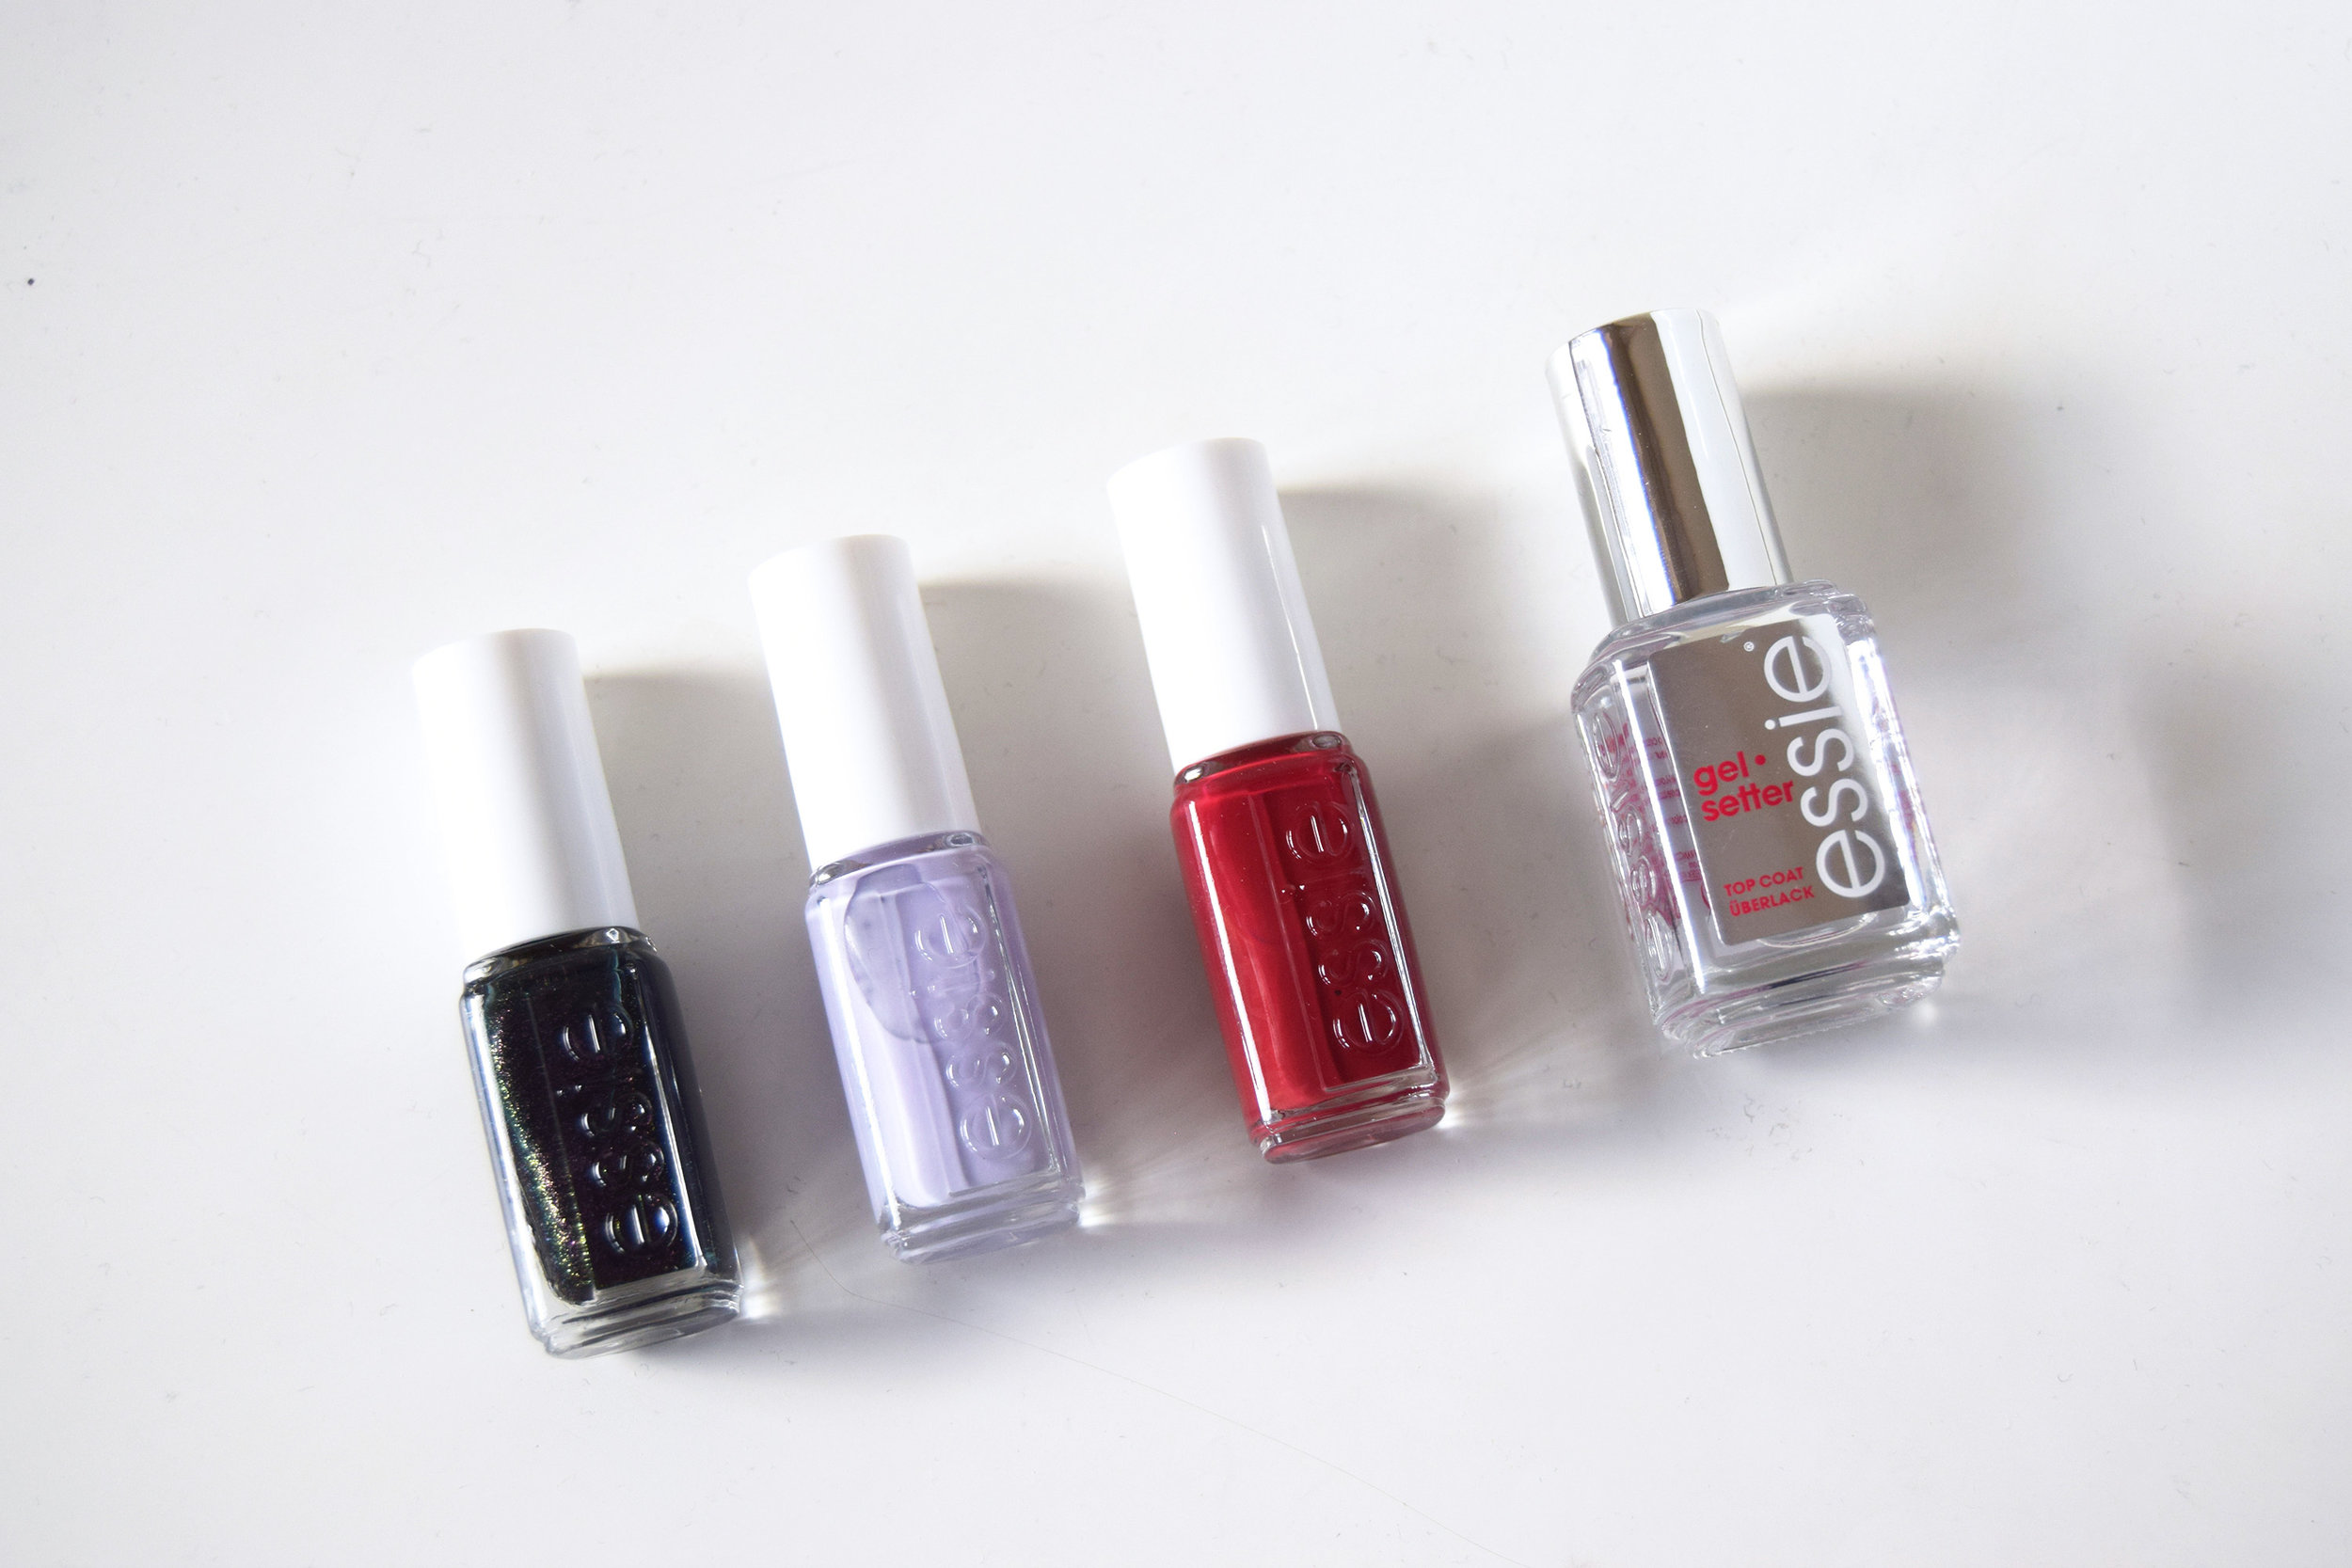 From left to right: Essie 'Haute Tub', 'Virgin Snow', 'Shall We Chalet?' and a Gel Setter top coat.